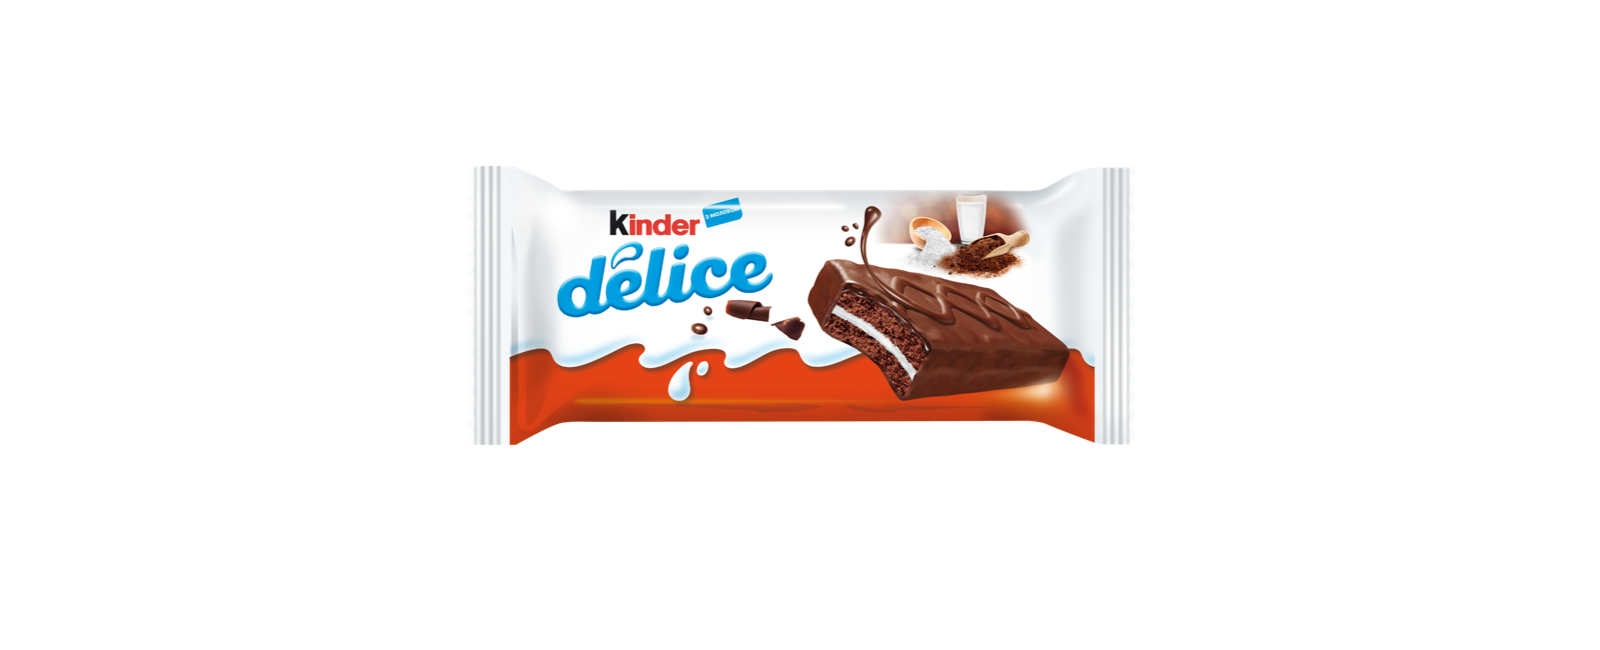 ice-sandwich-kinder-delice